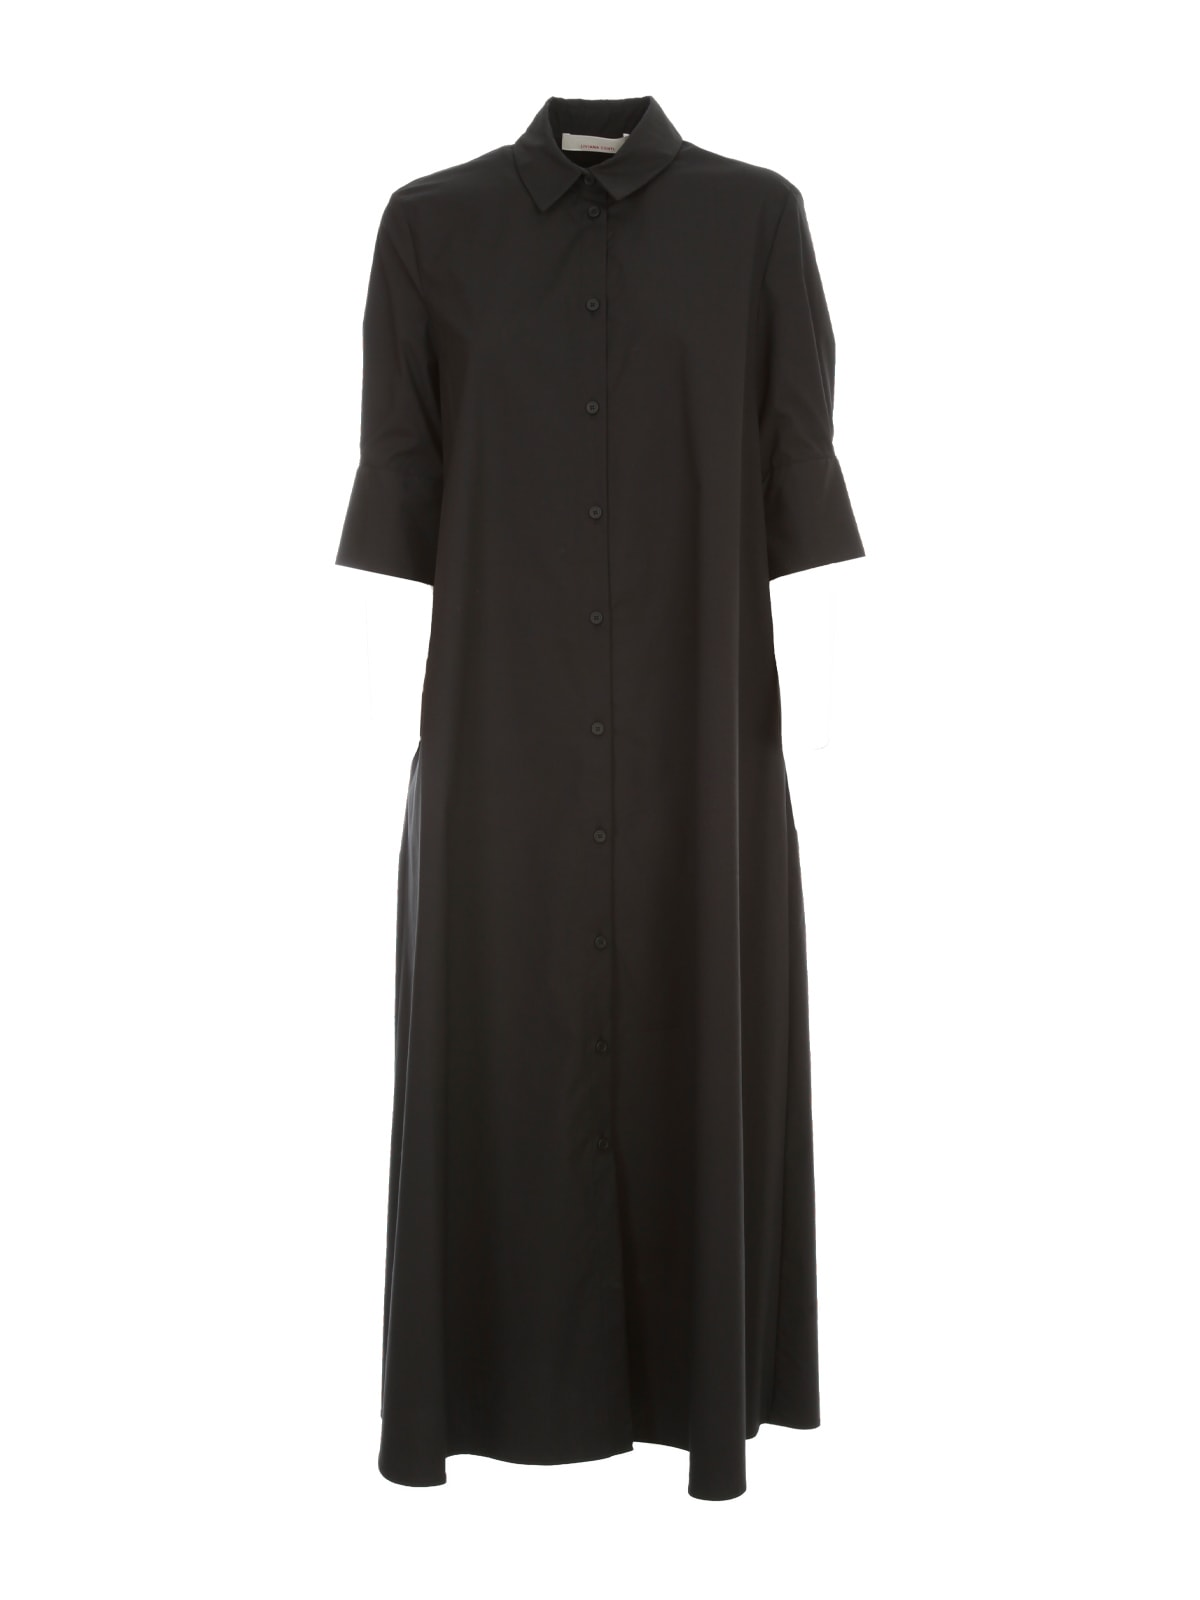 Buy Liviana Conti Long Chemisier Dress 3/4s A Line online, shop Liviana Conti with free shipping